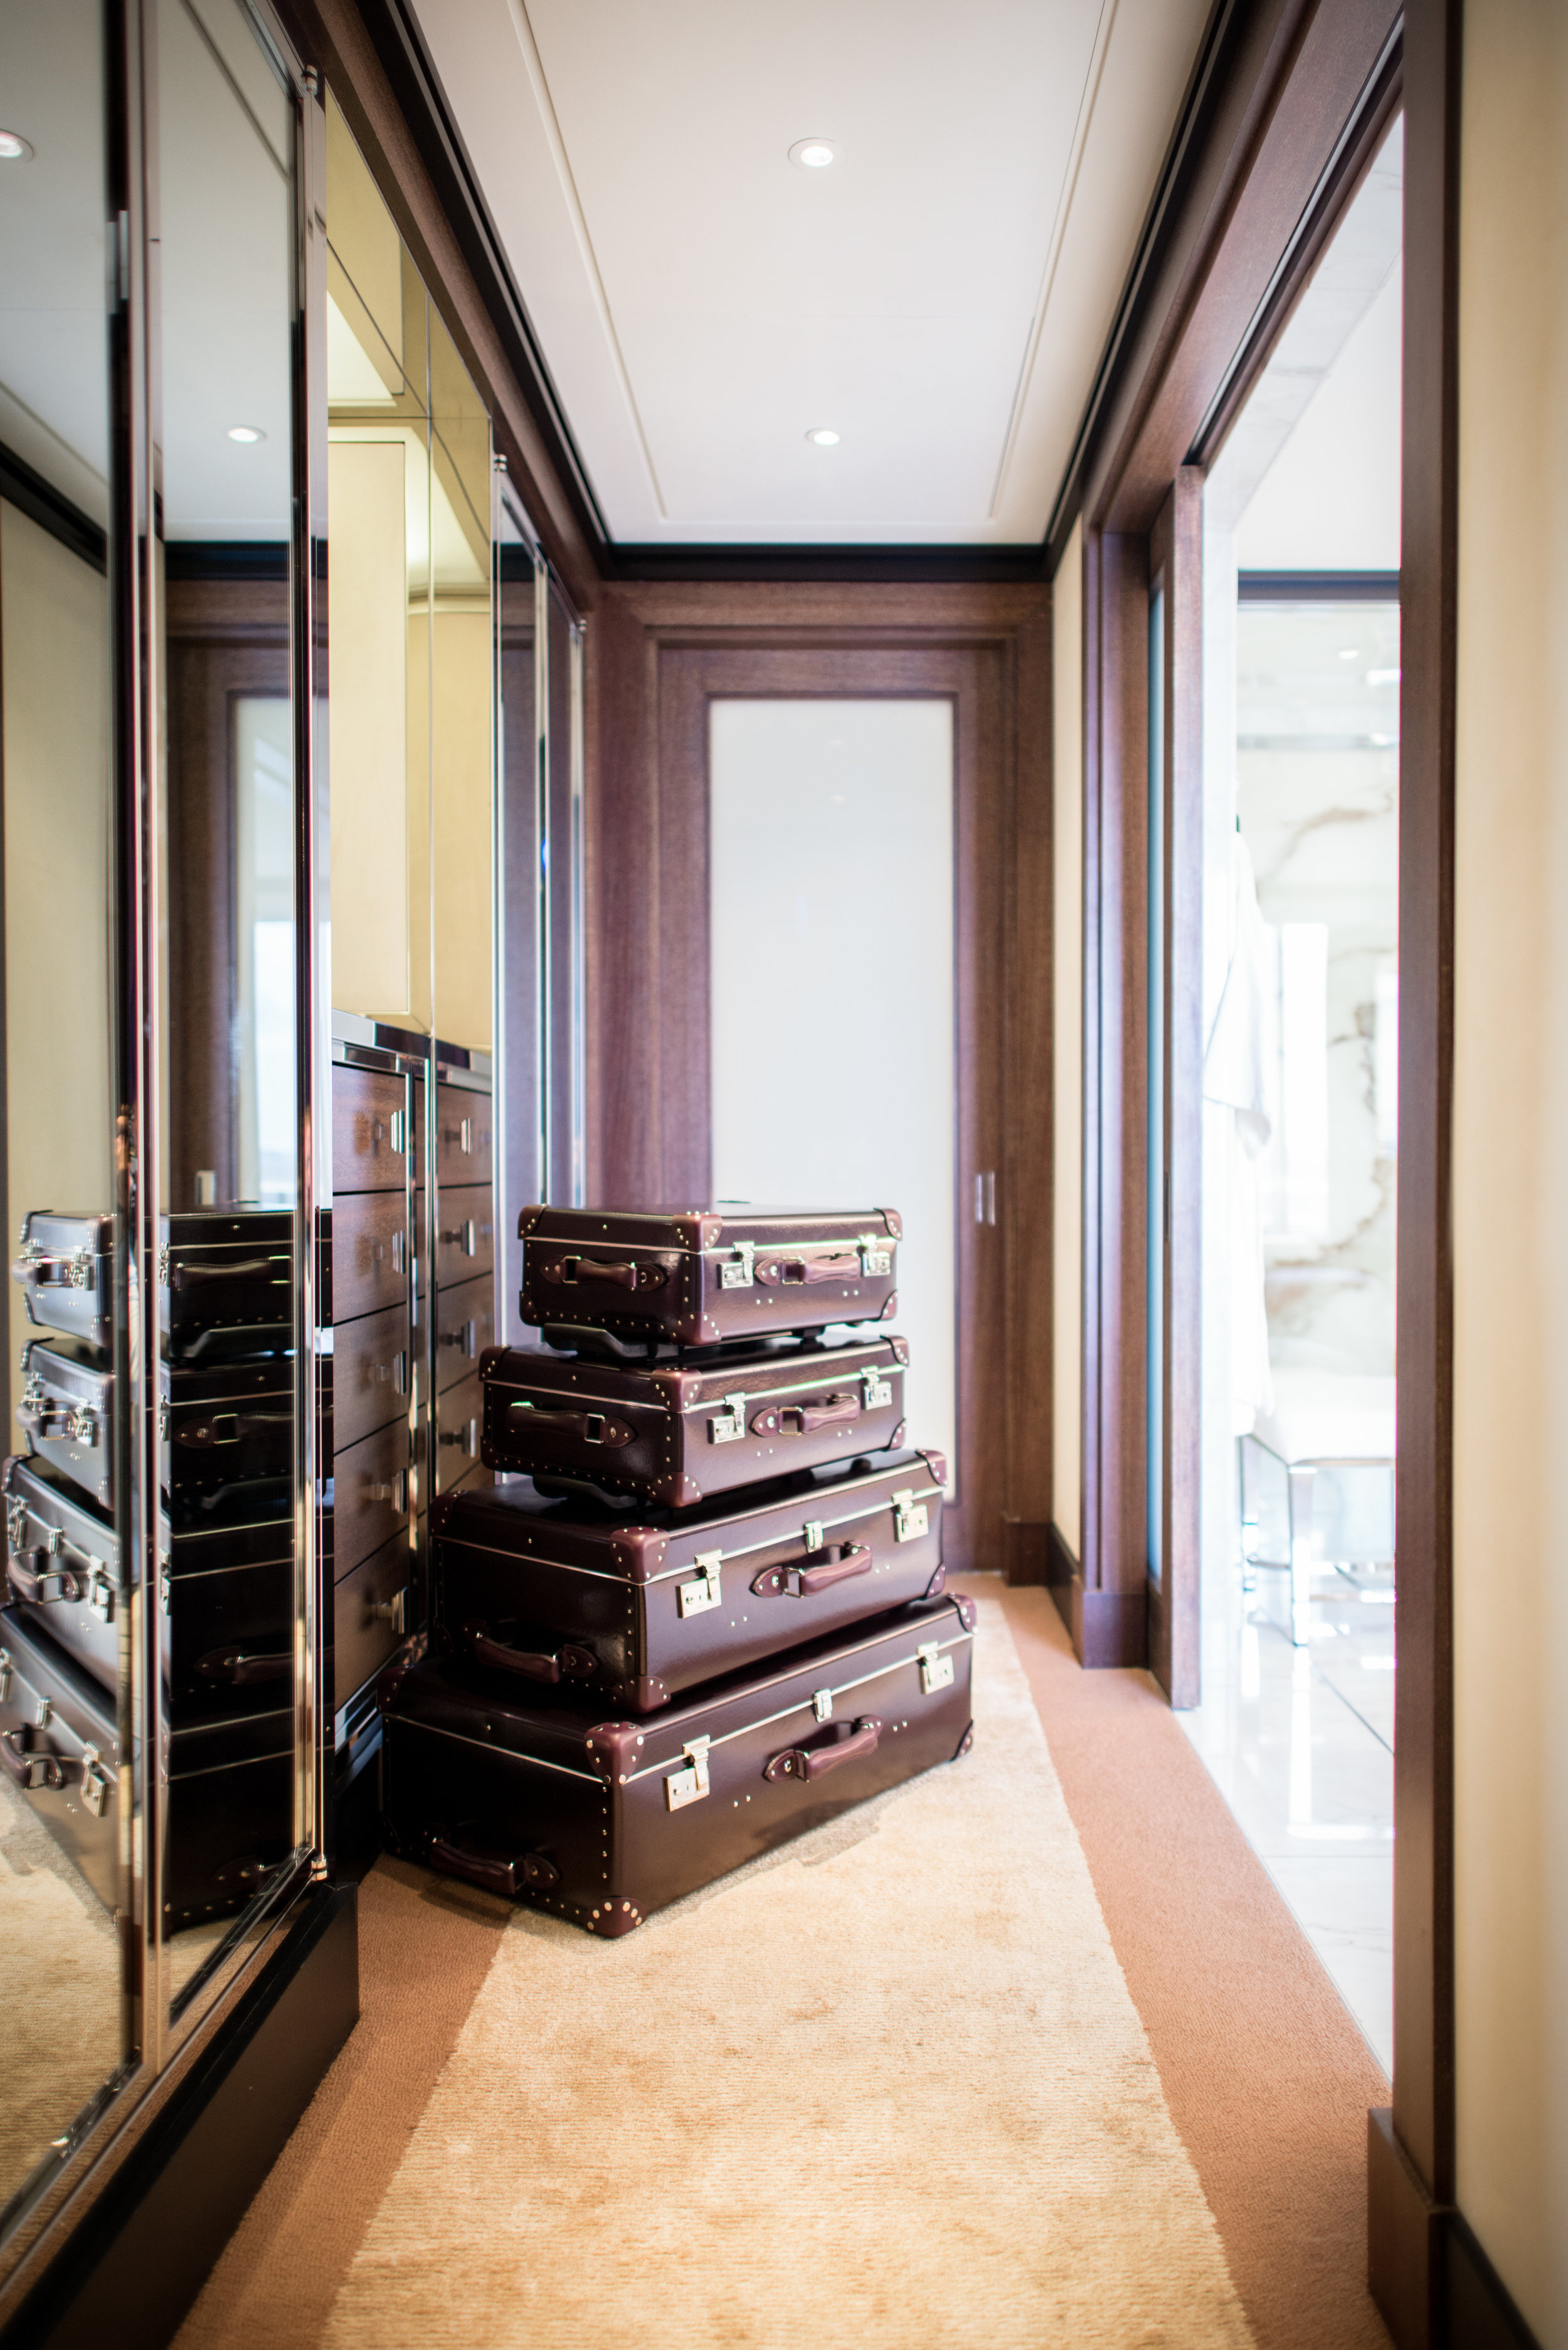 45 Park Lane - Penthouse Suite, wardrobe with luggage (high res).jpg